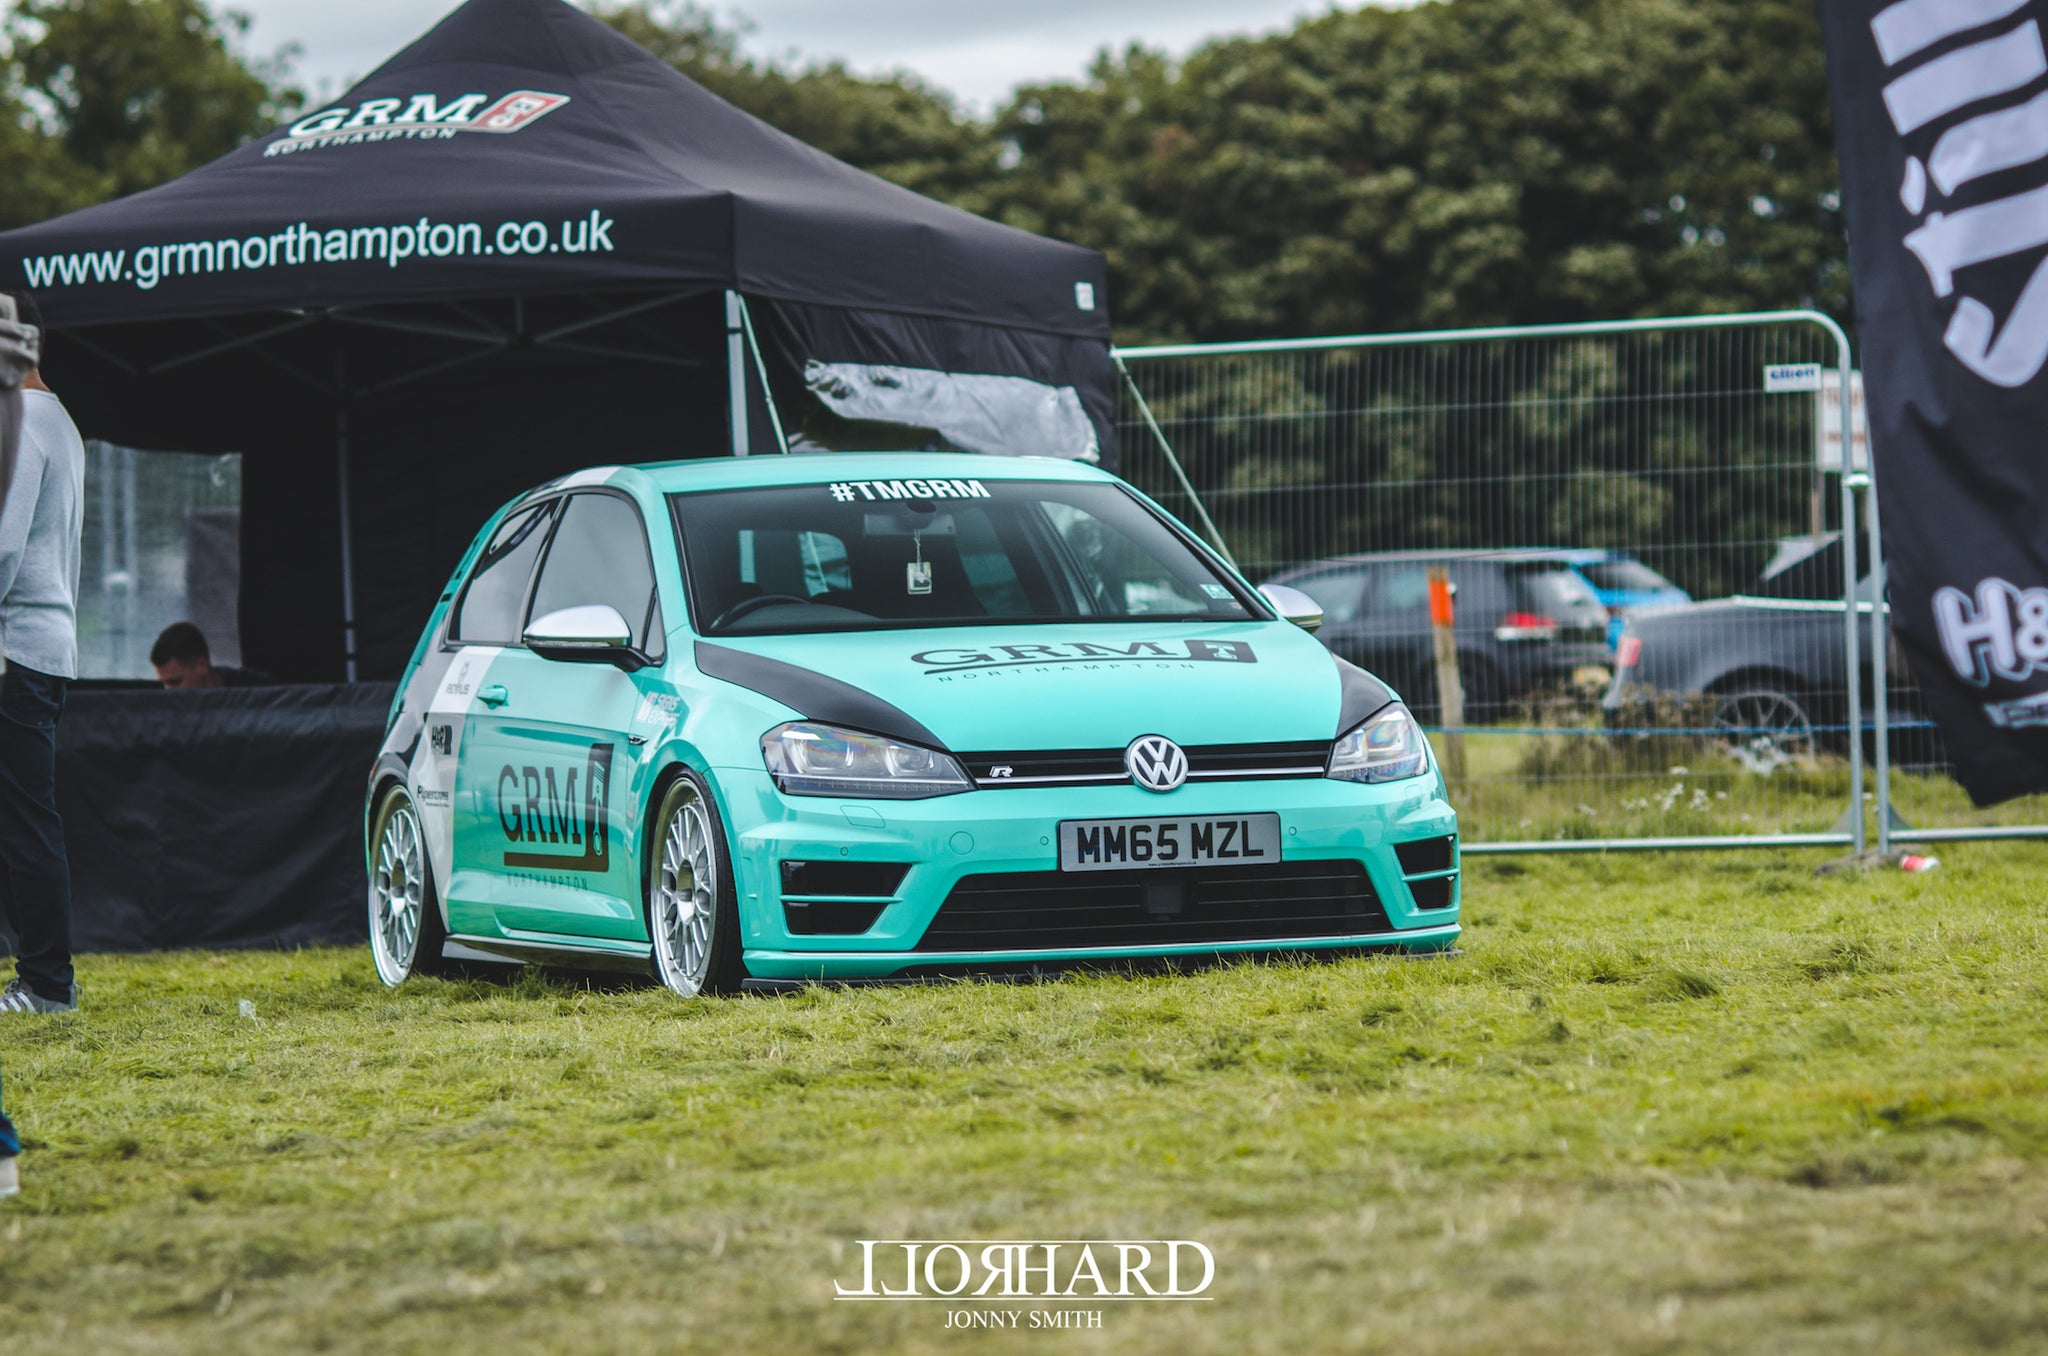 RollHard - Edition 38 show coverage, E38/VW, Jonny Smith